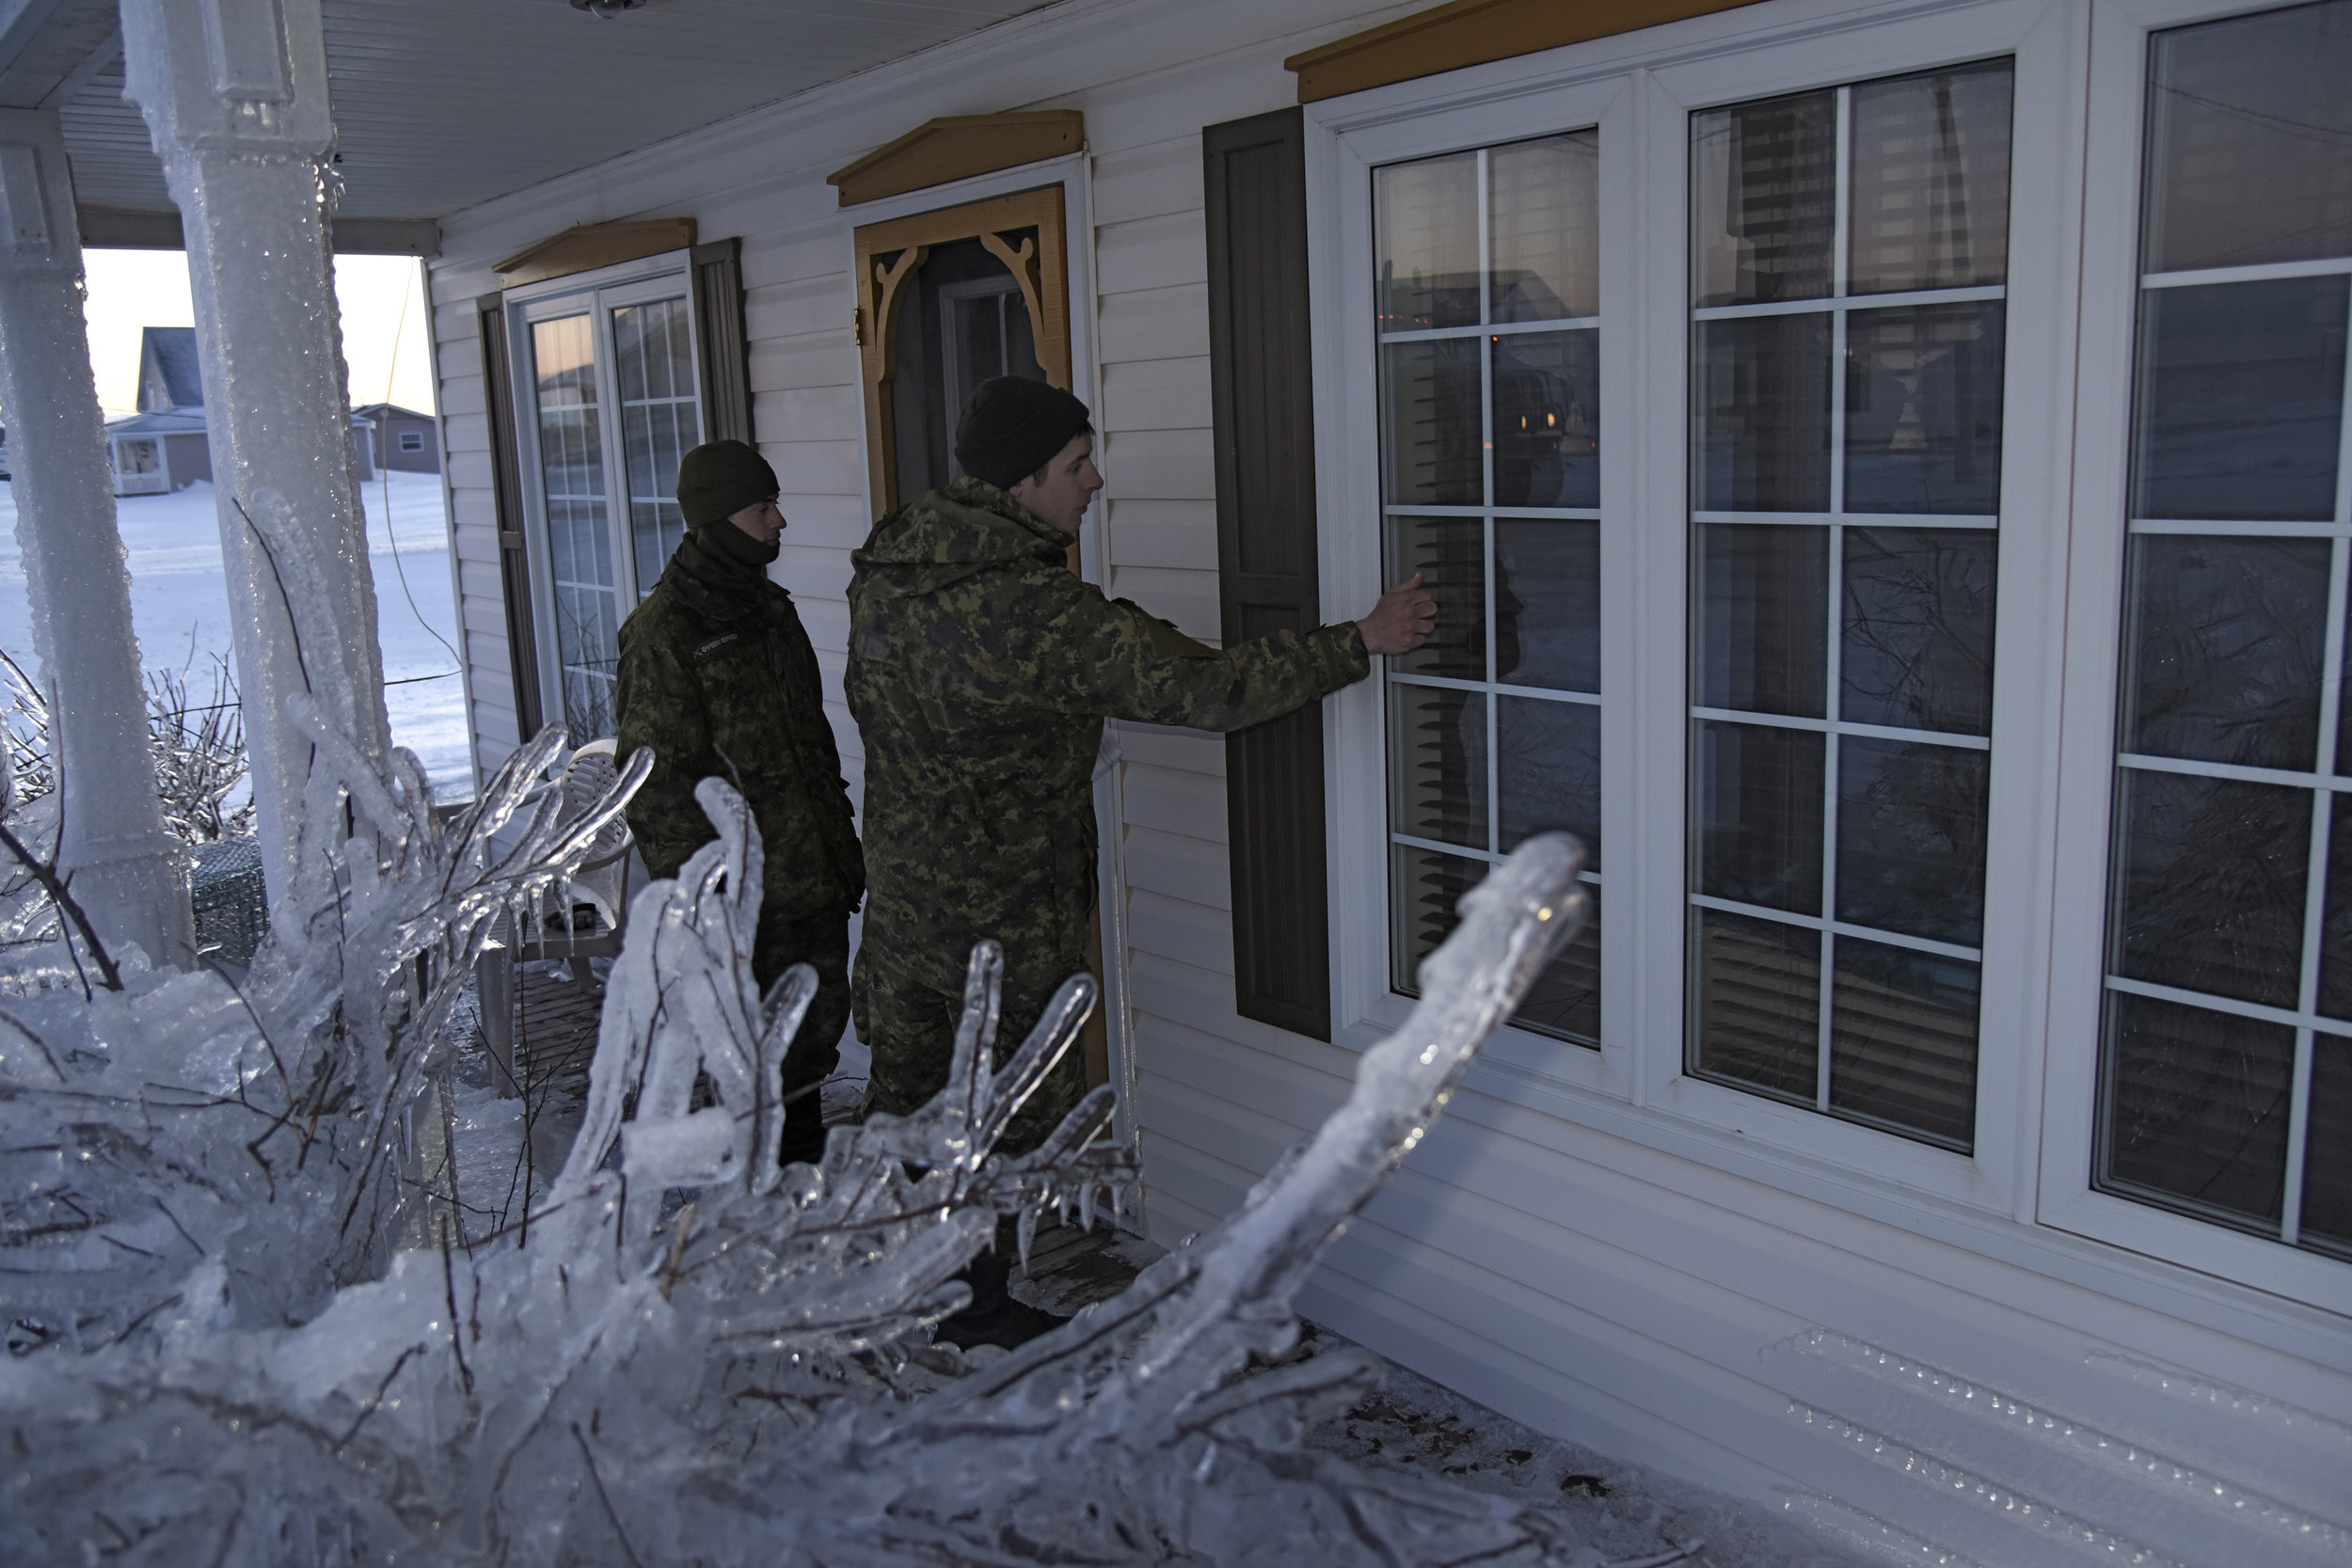 Members of 4th Artillery Regiment (General Support) knock on a window during their door-to-door check to ensure residents are safe during Operation LENTUS 17-01 — the CAF's response to the ice storm that affected some 200,000 homes in the Acadian Peninsula of New Brunswick in January 2017. Following the April flooding in Kashechewan, Ontario and the May flooding in Quebec and Newfoundland, the CAF is now undertaking its fifth mission against natural disasters in 2017 with the committing of resources to assist in fighting the B.C. wildfires emergency. (wo jerry kean,   5   cdn div public affairs, dnd)